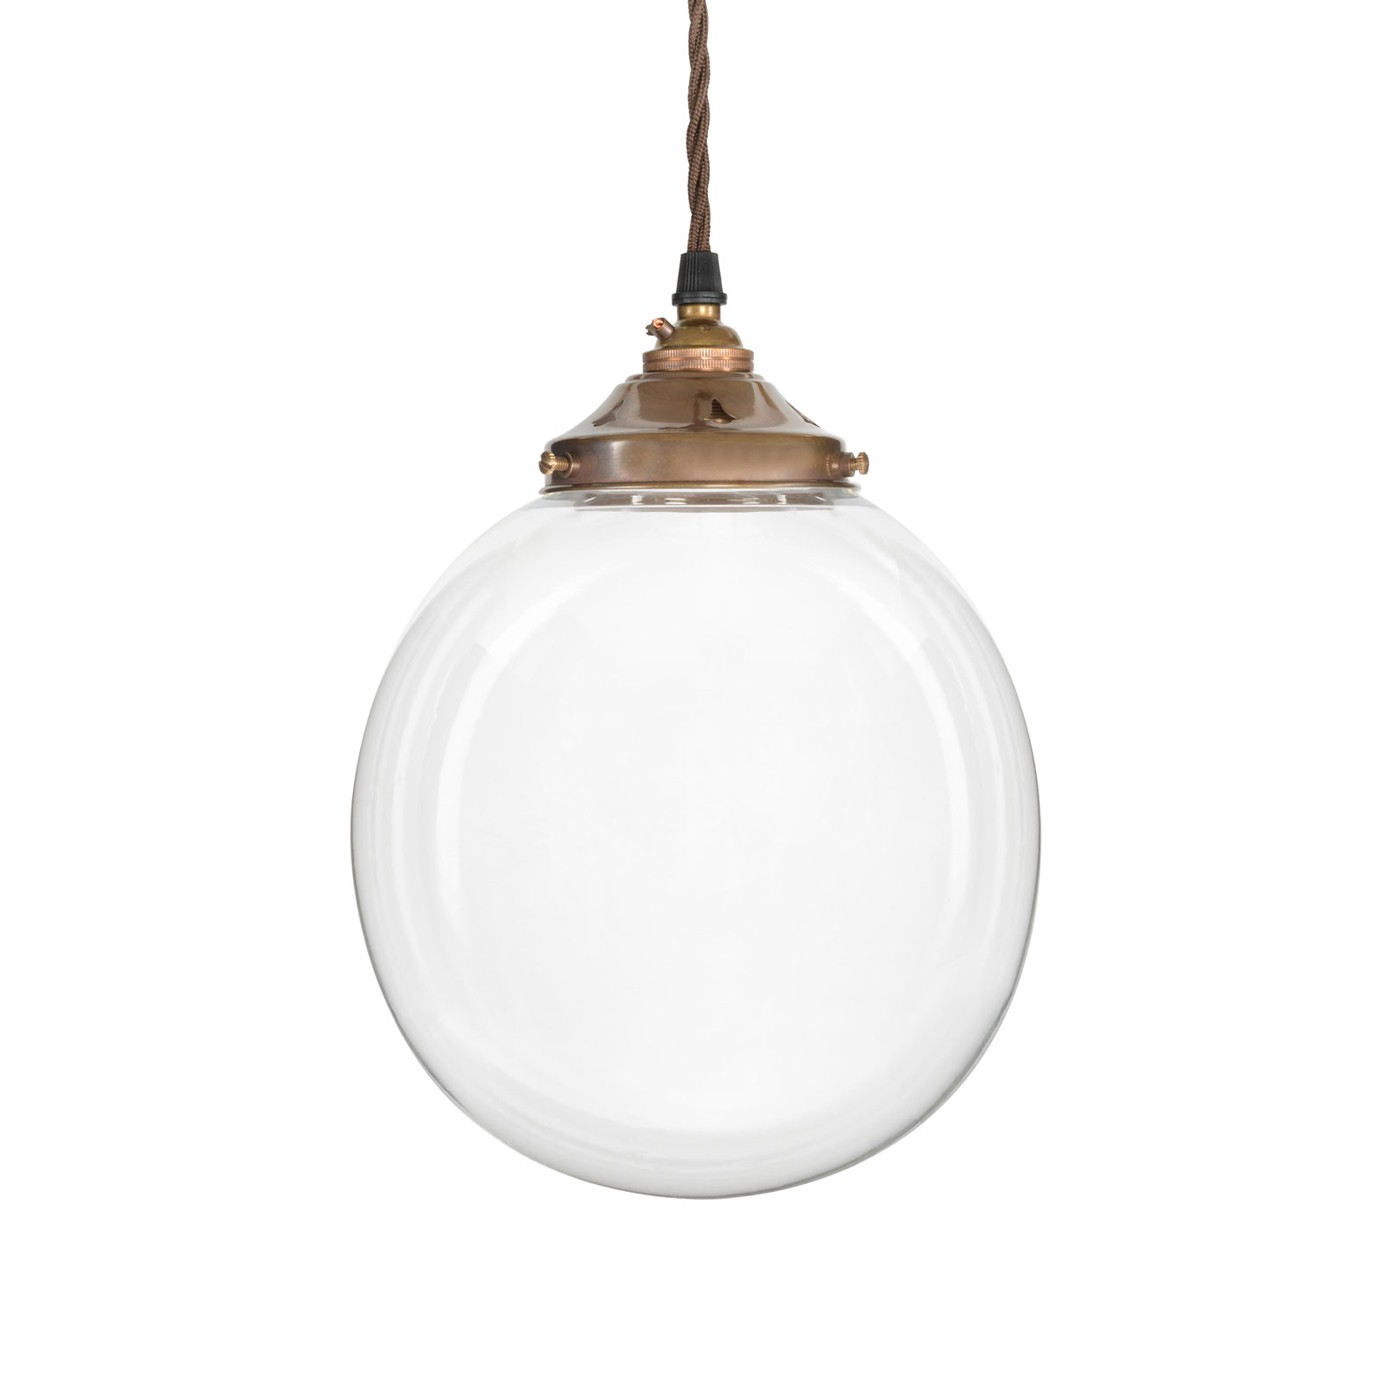 Globe Ceiling Light Progress Lighting P3599 Glass Globe Flush Mount Ceiling Light Atg Stores